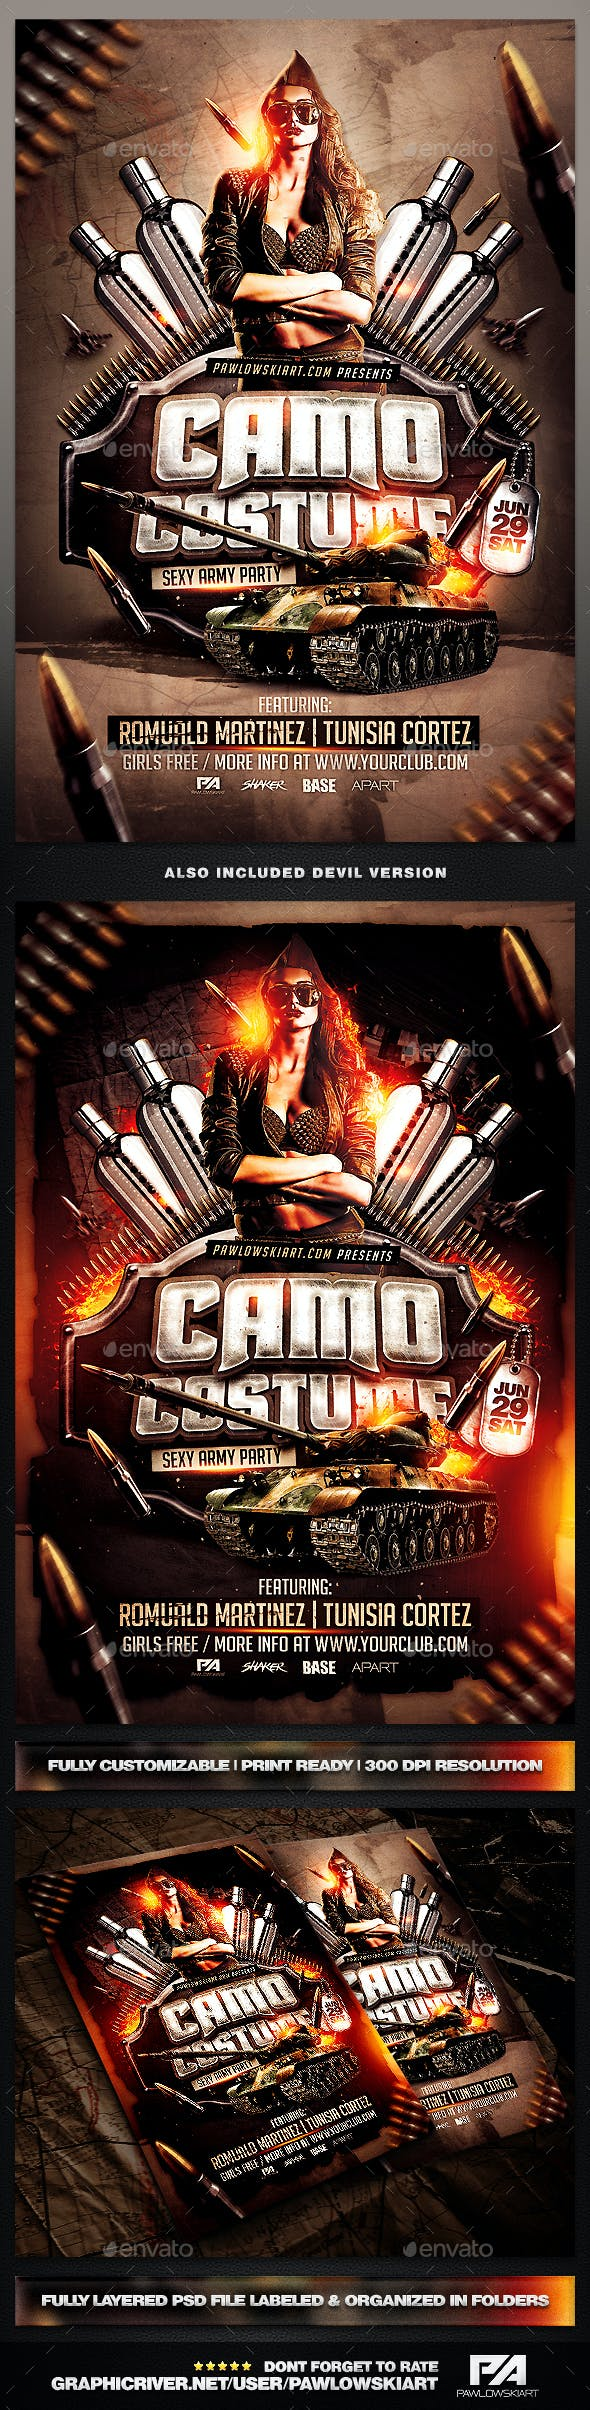 camo costume party psd flyer template by pawlowskiart graphicriver